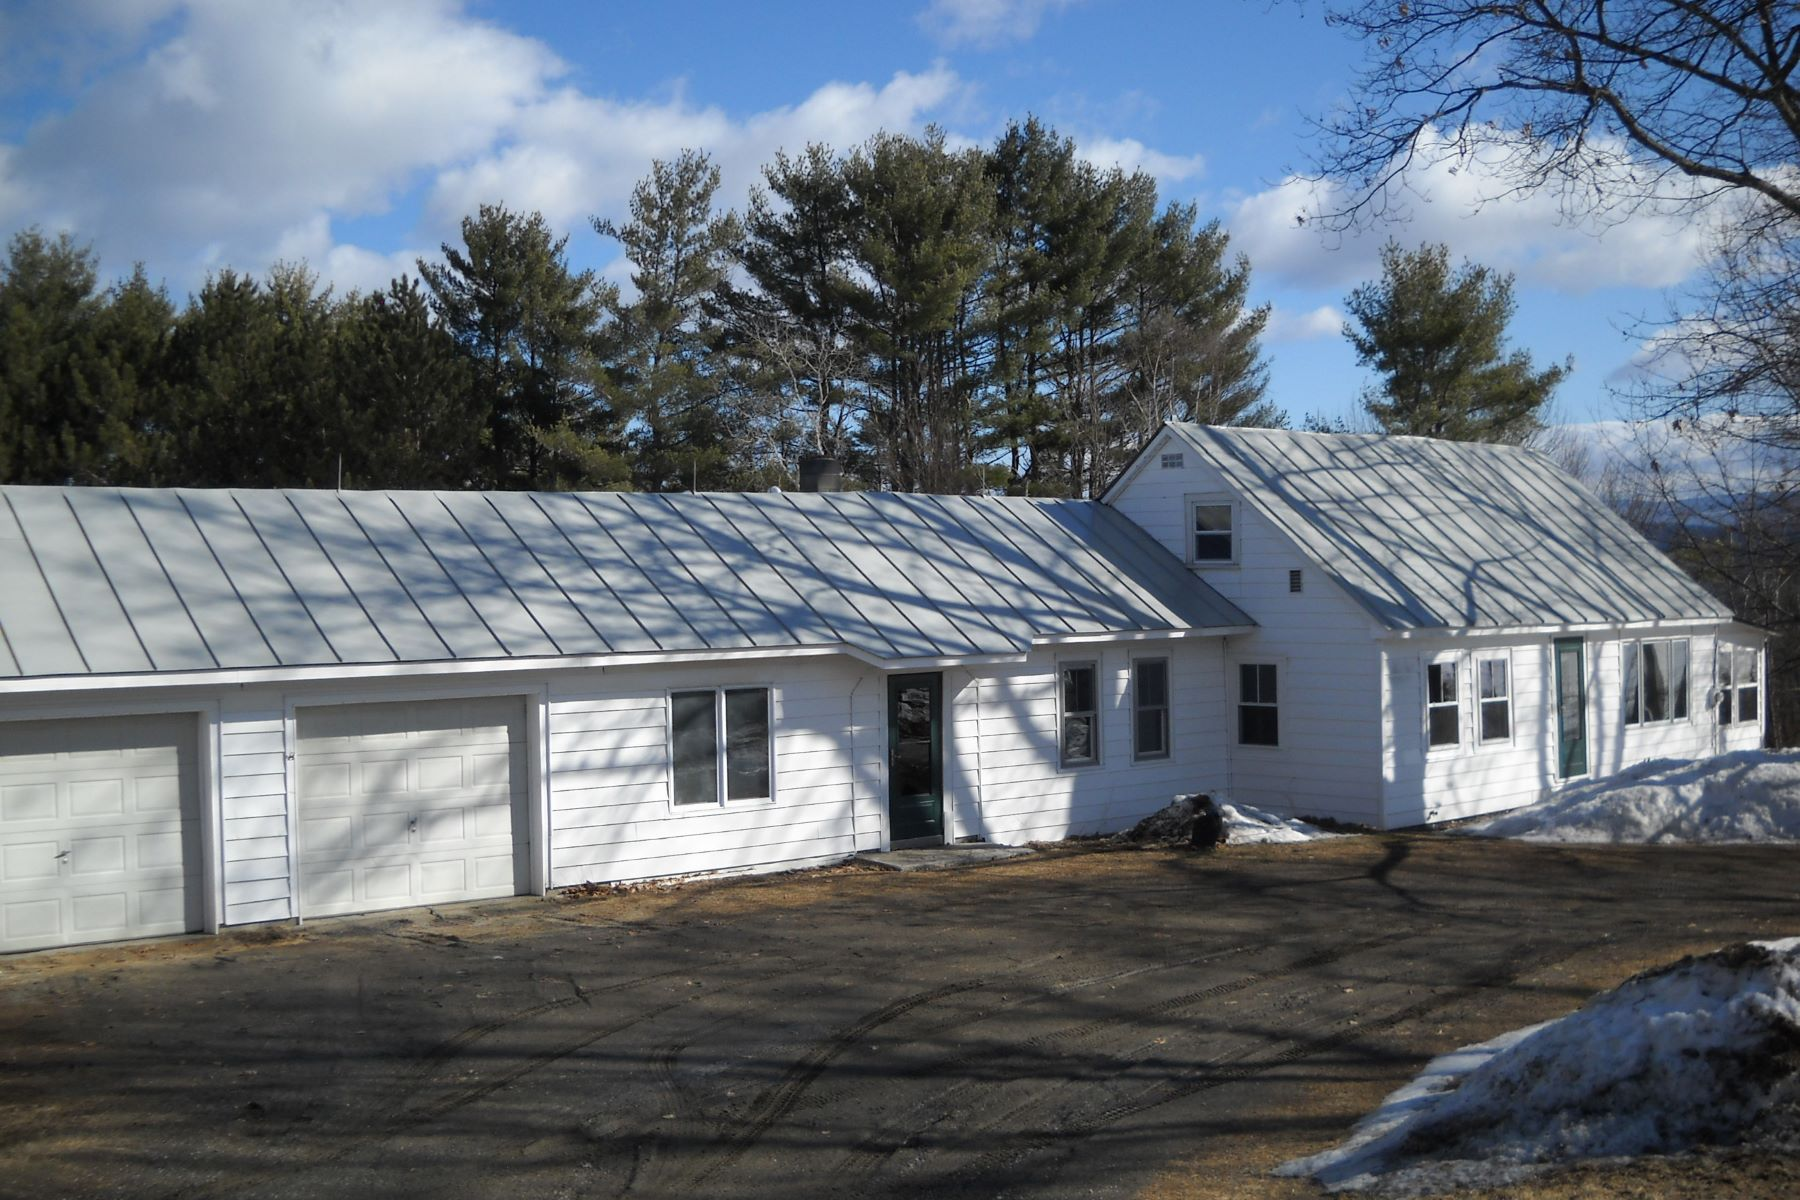 Single Family Homes for Sale at Three Bedroom Antique Cape in Bradford 432 South Road Bradford, Vermont 05033 United States